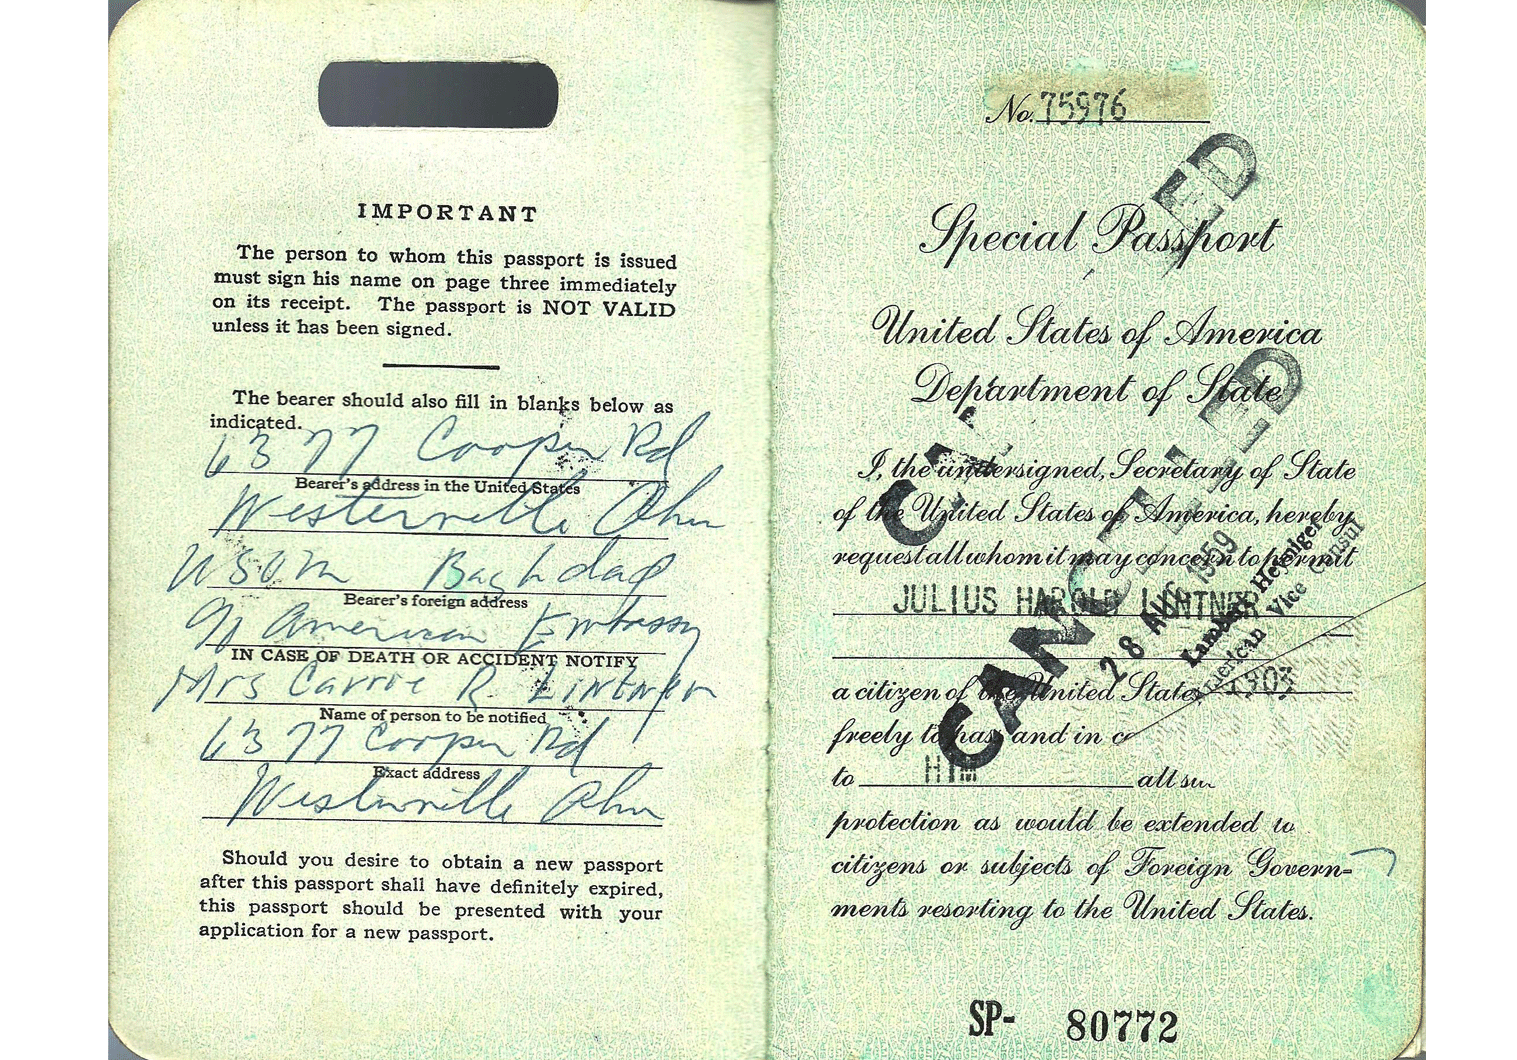 cold-war US special passport